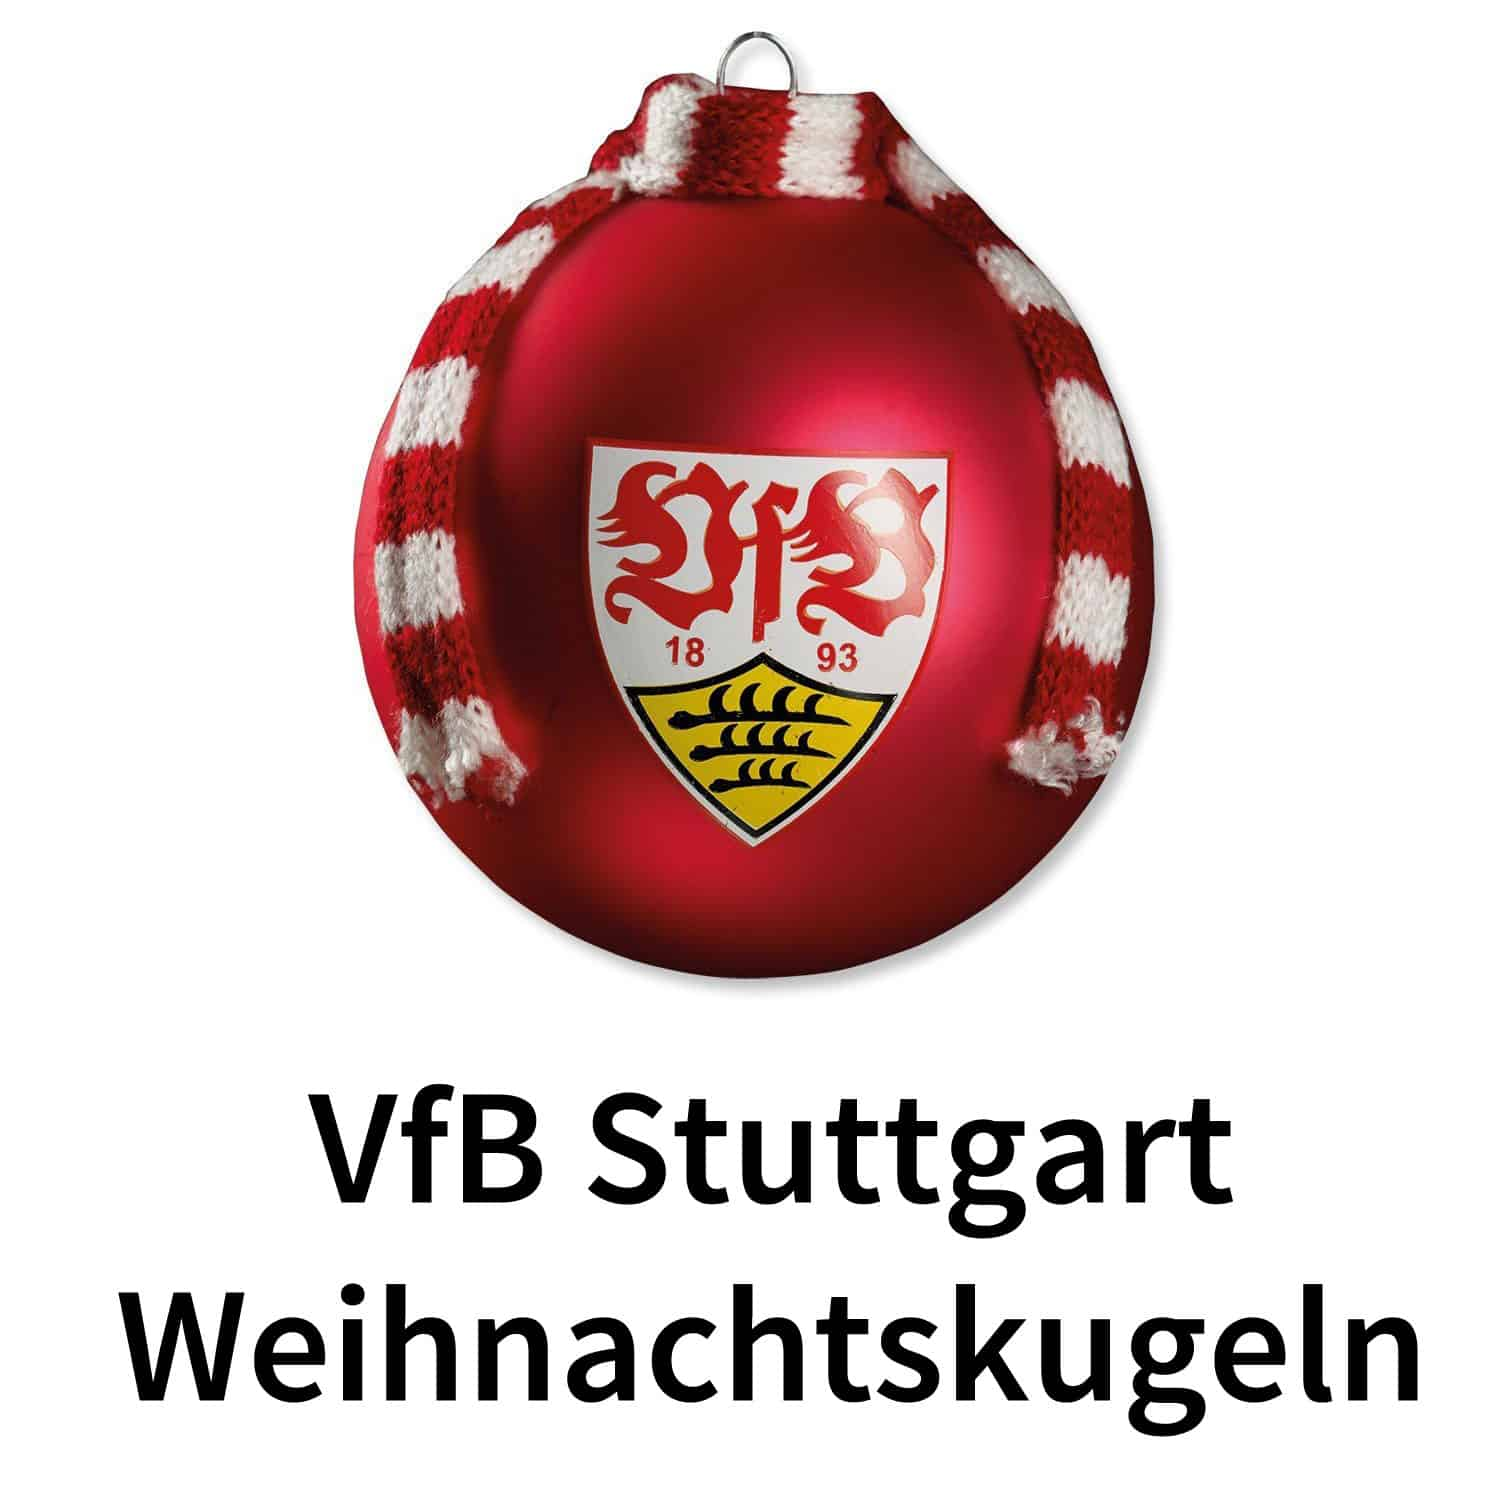 vfb stuttgart weihnachtskugeln christbaumkugeln. Black Bedroom Furniture Sets. Home Design Ideas